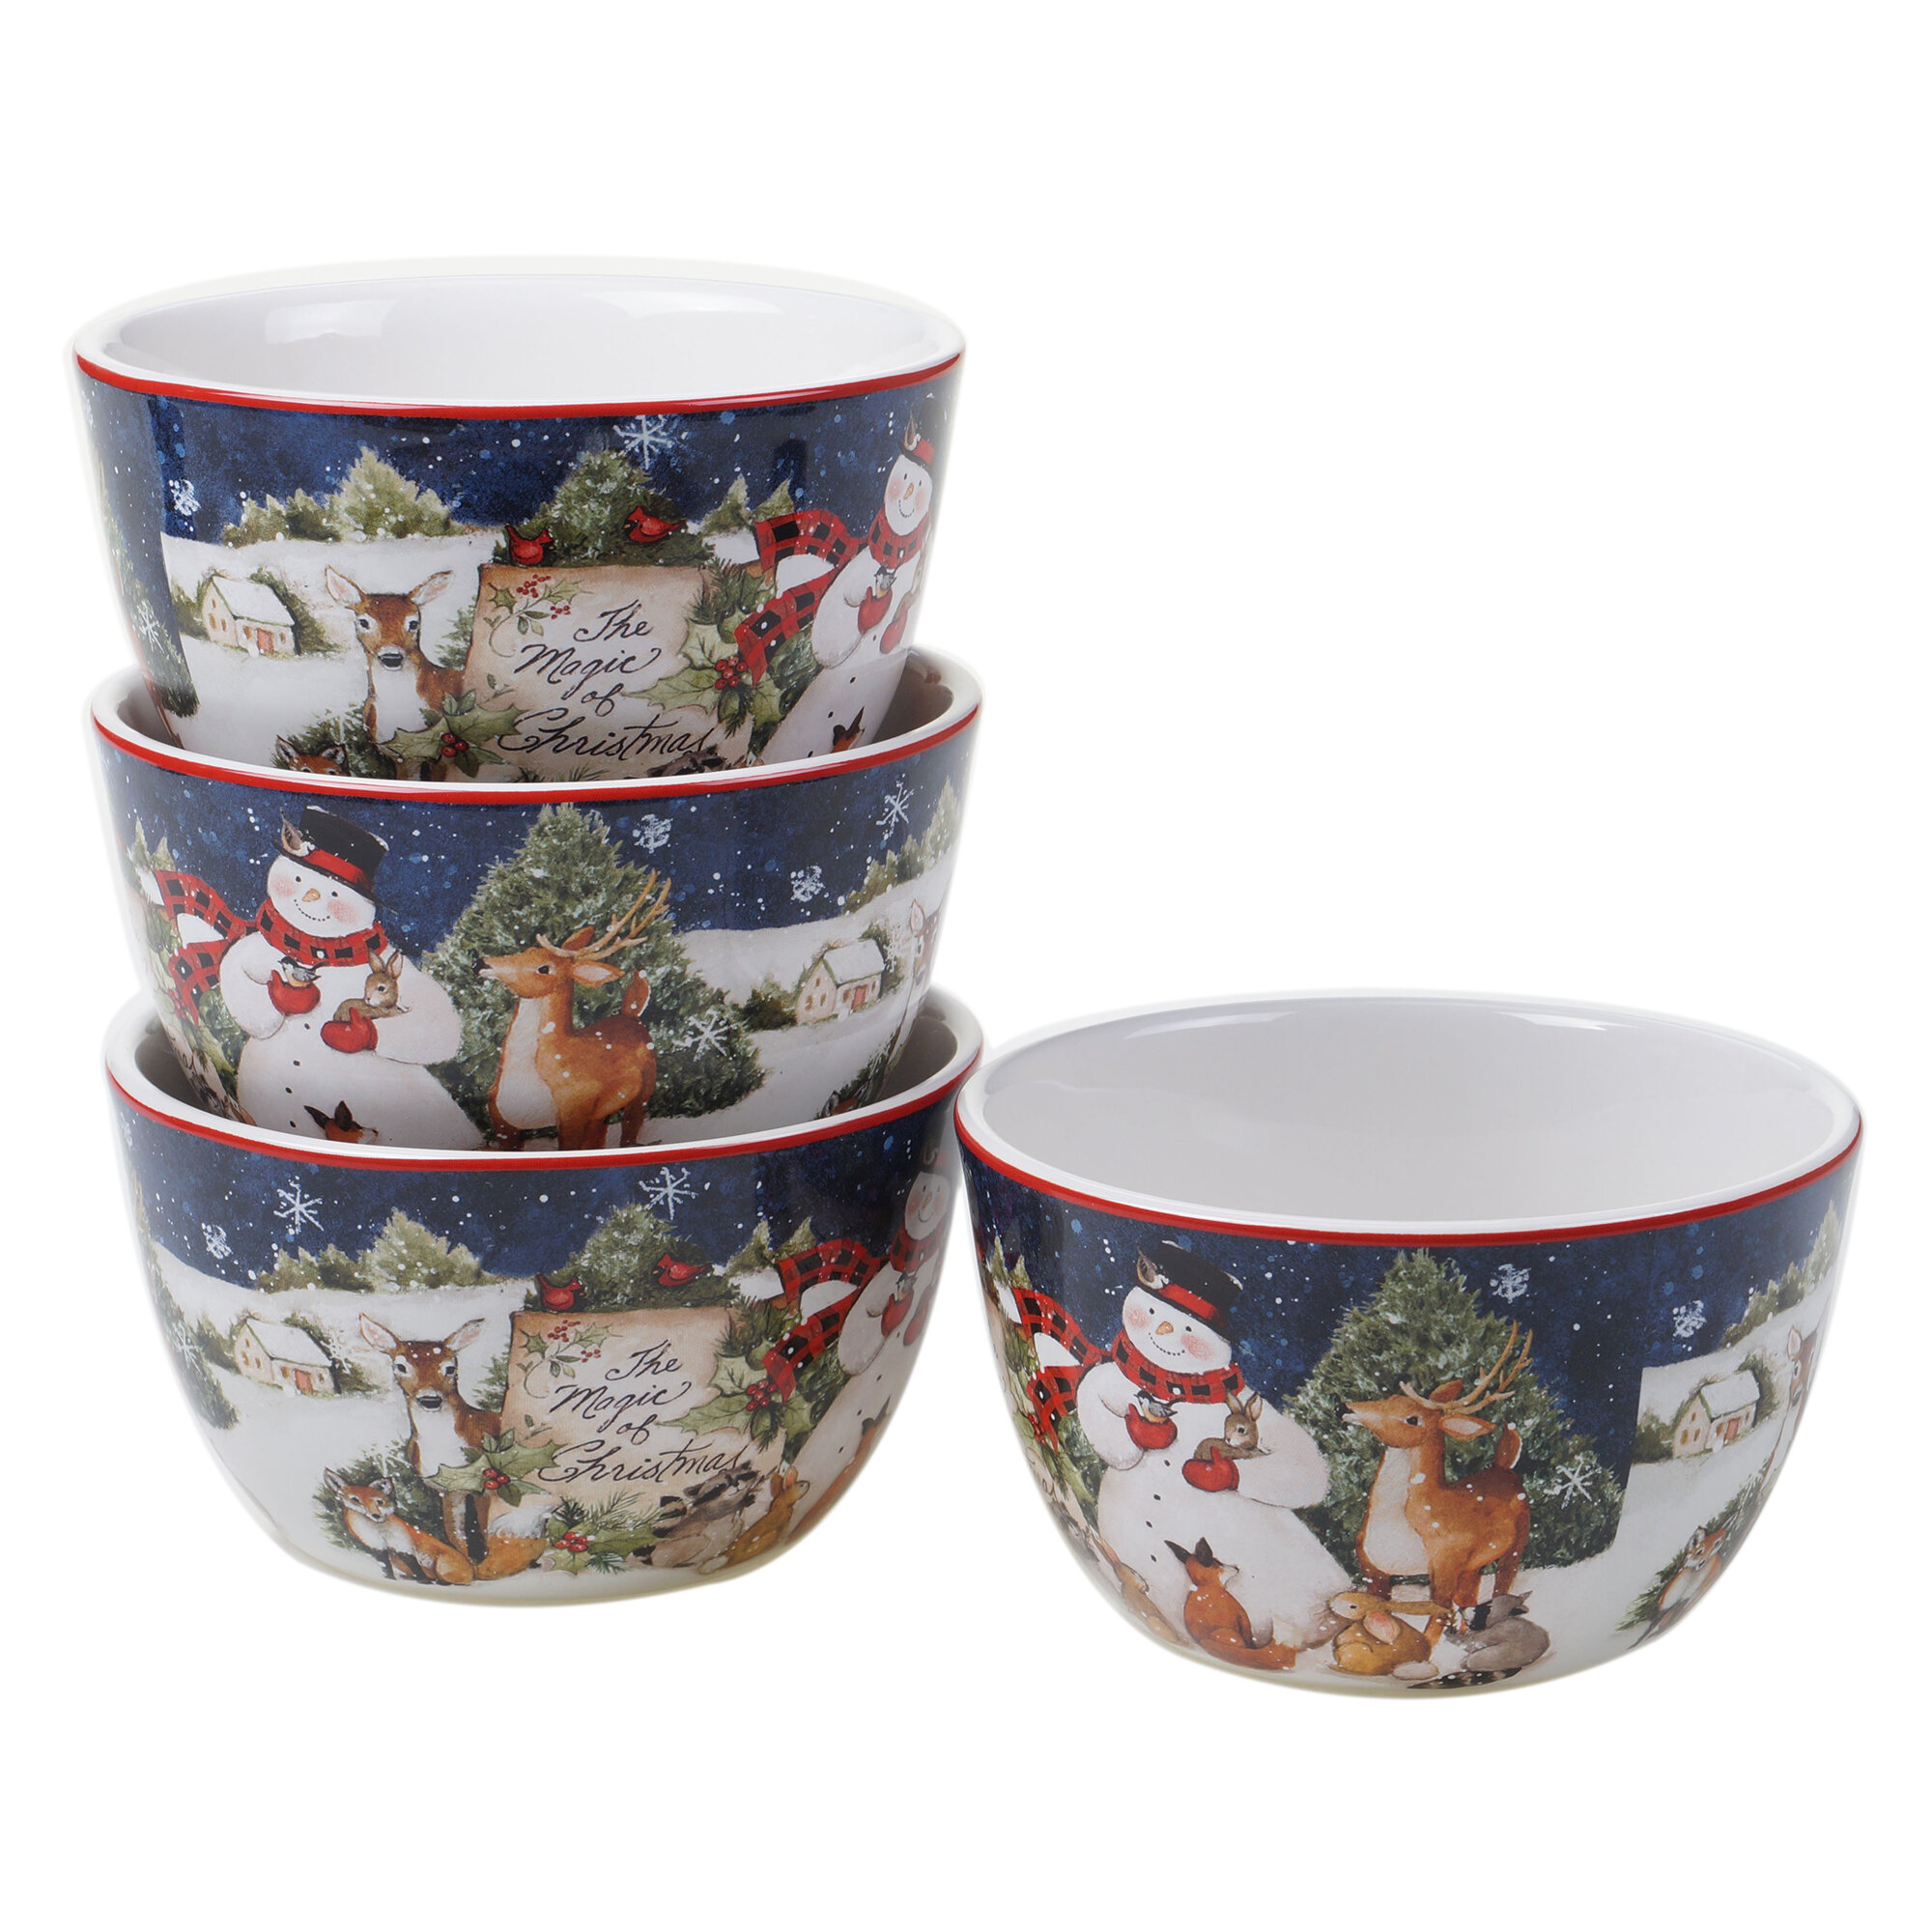 Christmas Dessert Types Dining Bowls You Ll Love In 2021 Wayfair